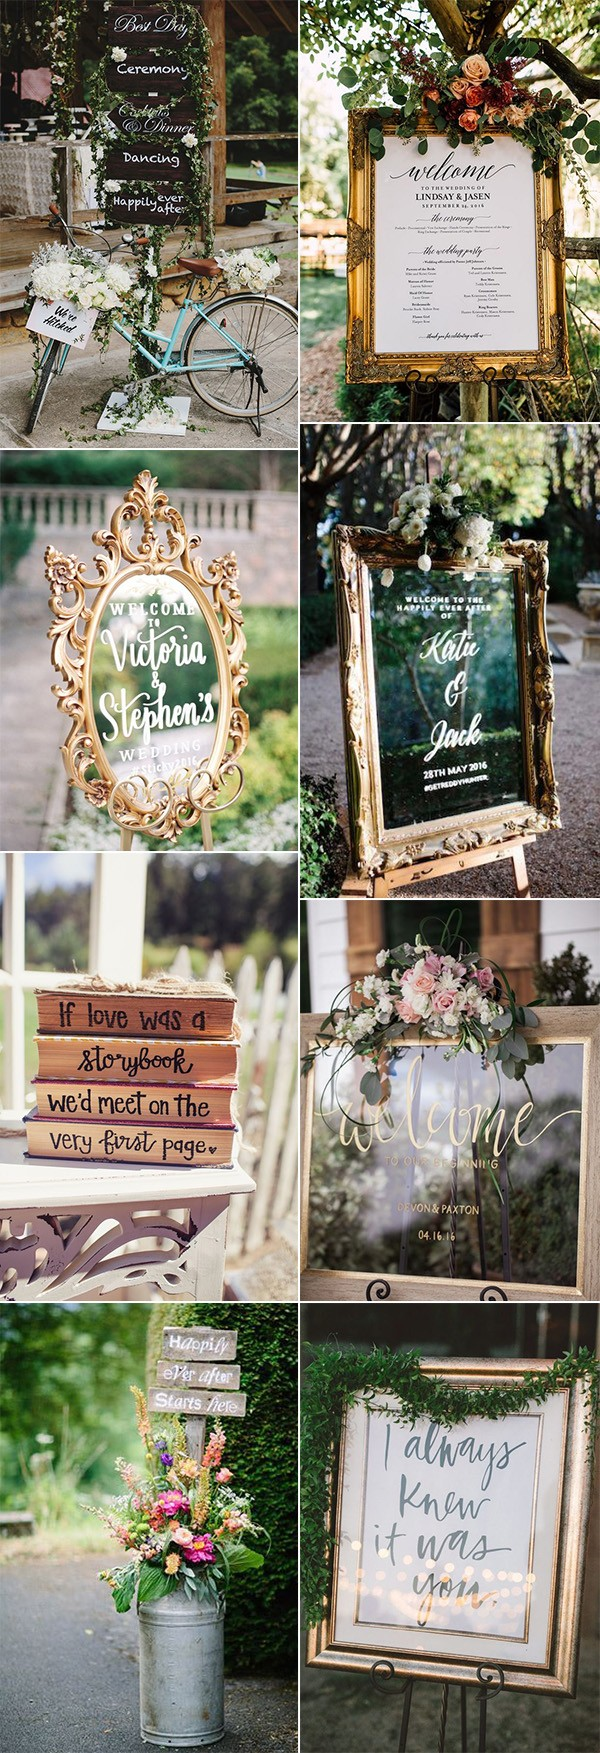 60 adorable vintage wedding ideas for 2018 trends for Vintage wedding decorations